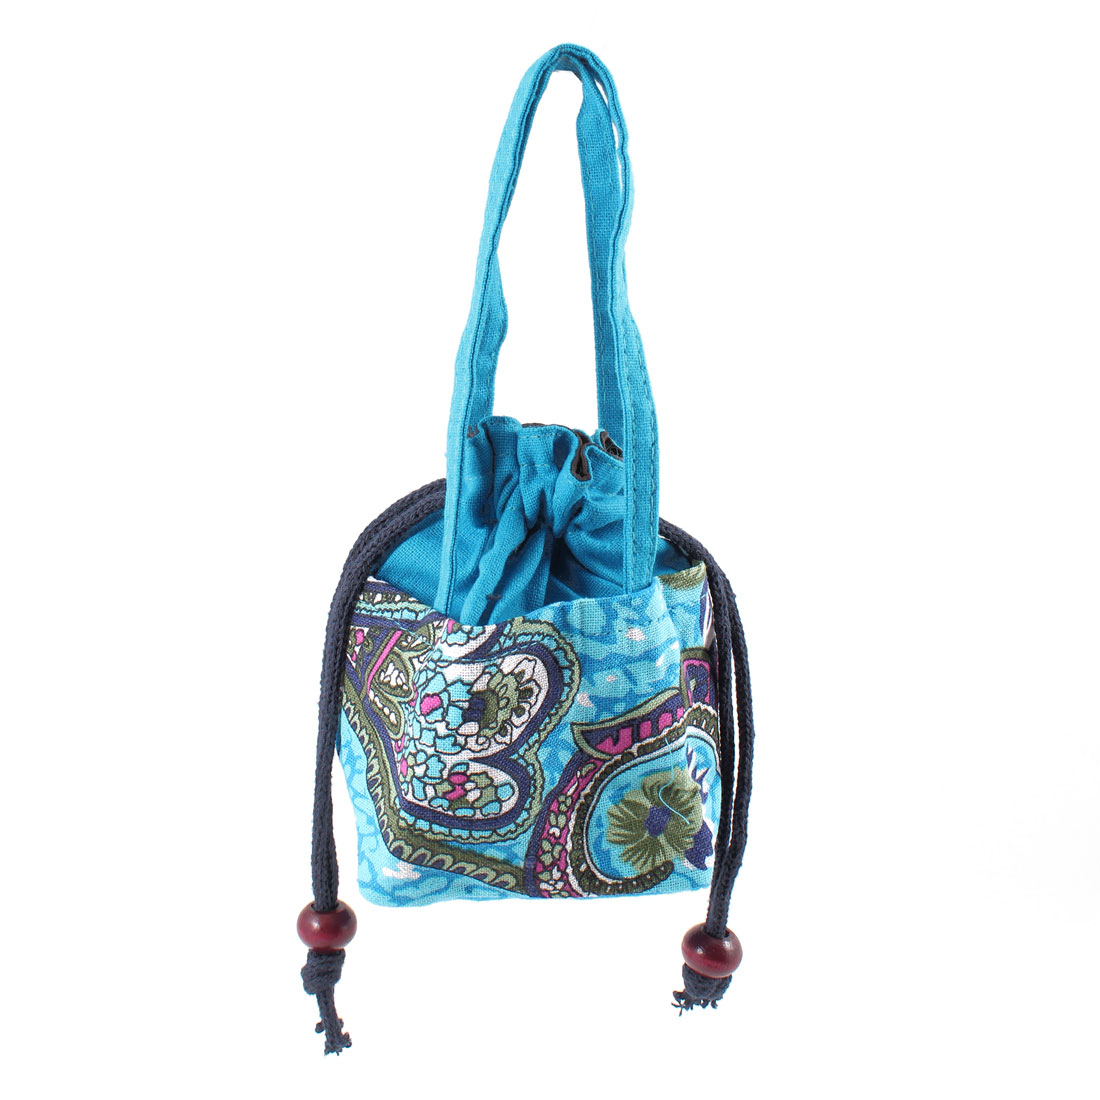 Lady Blue Drawstring Novelty Prints Nylon Handbag Tote Bag